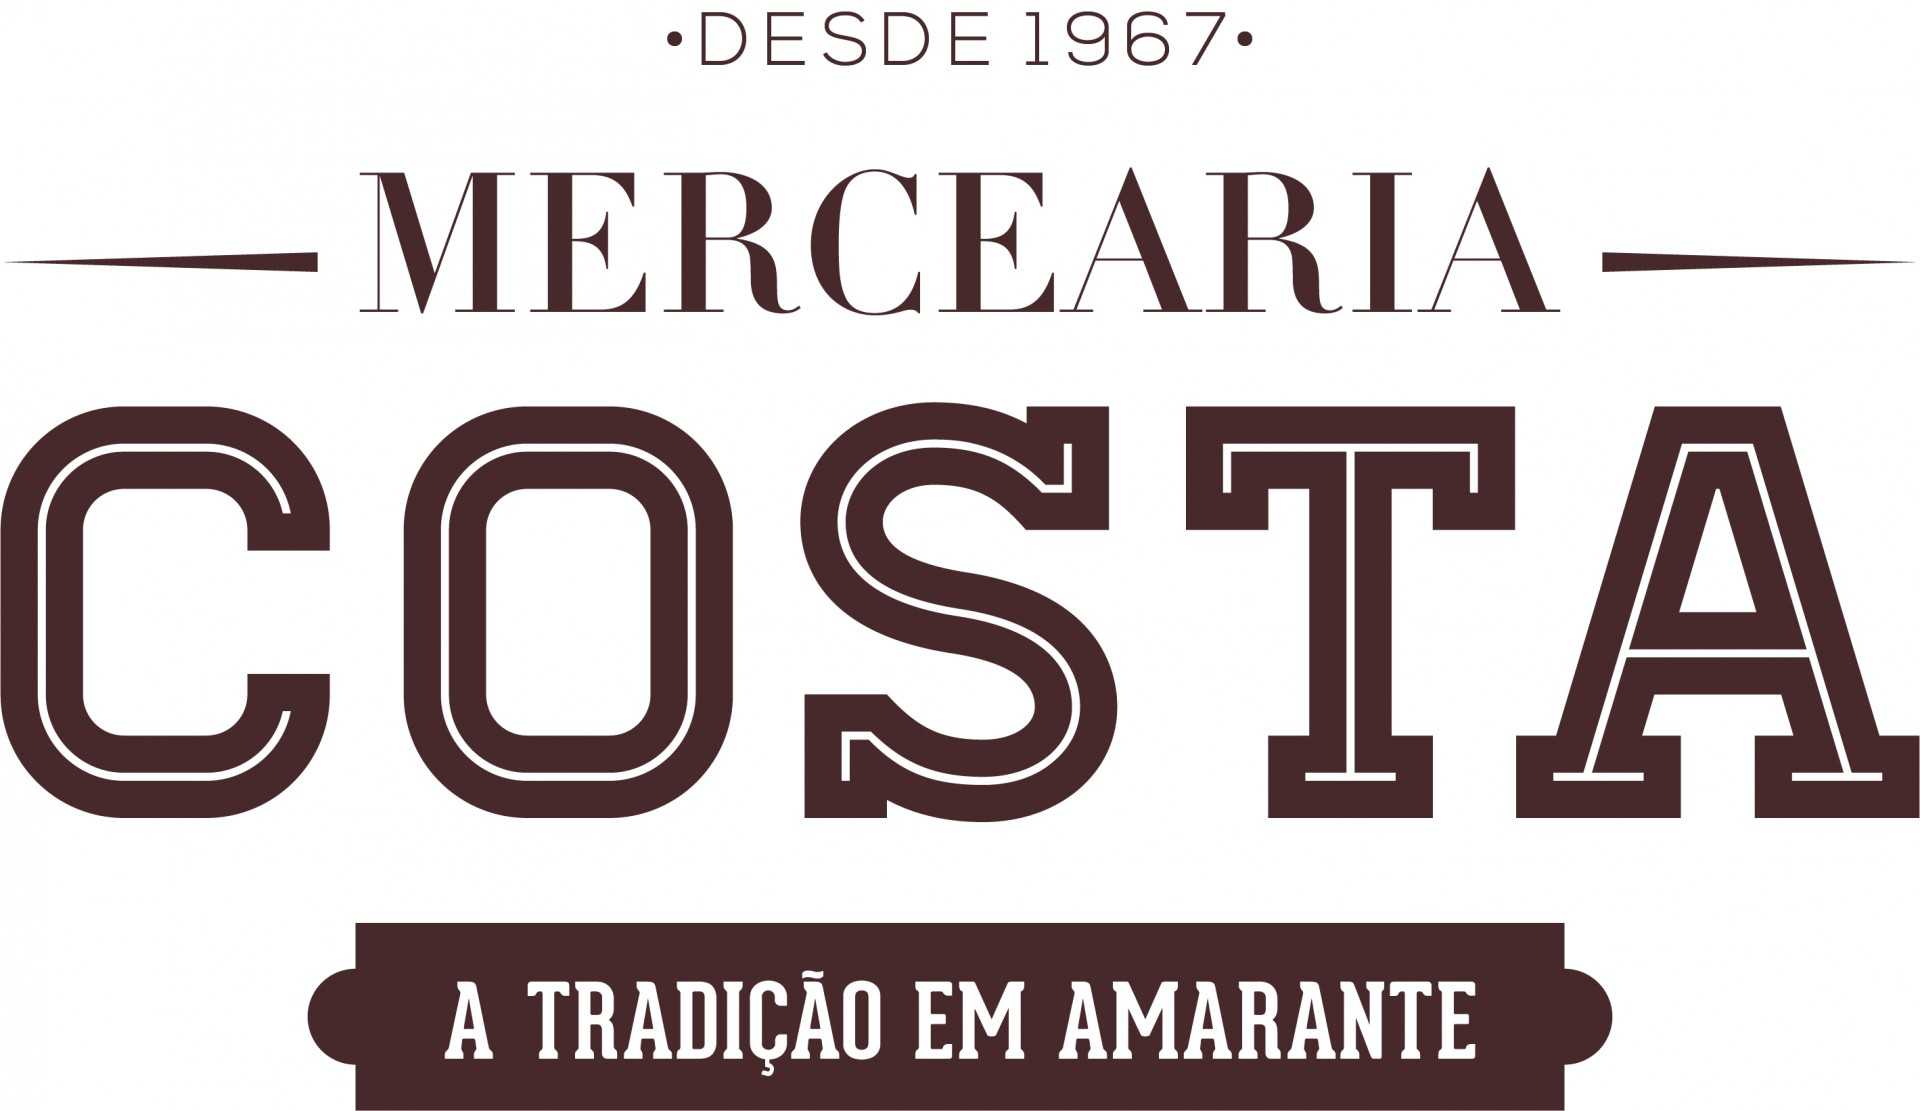 Mercearia Costa